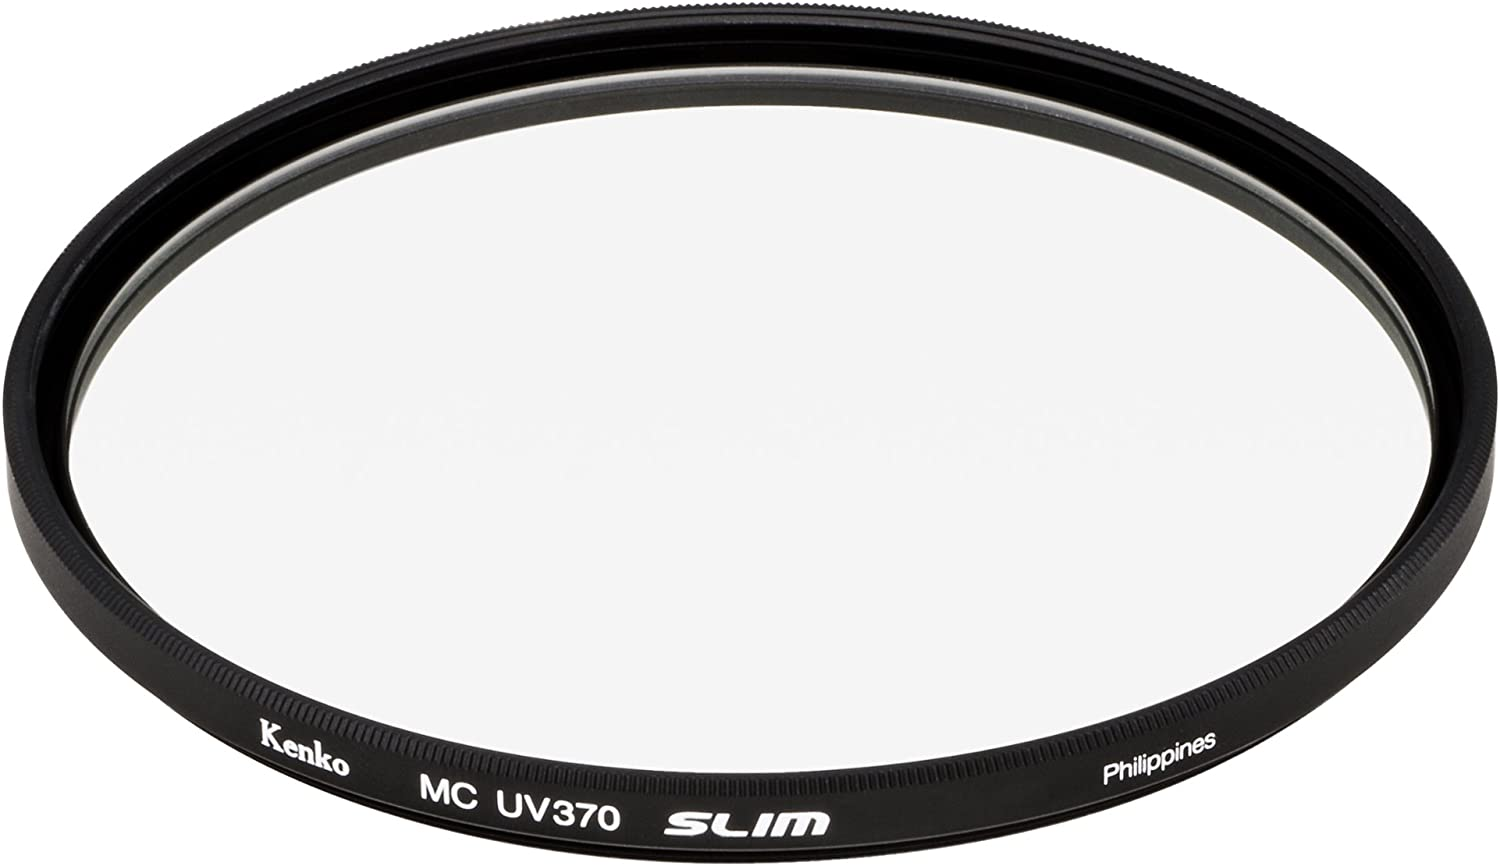 Kenko 67mm L41 Super PRO WIDE Super-Multi-Coated Slim Frame Camera Lens Filters